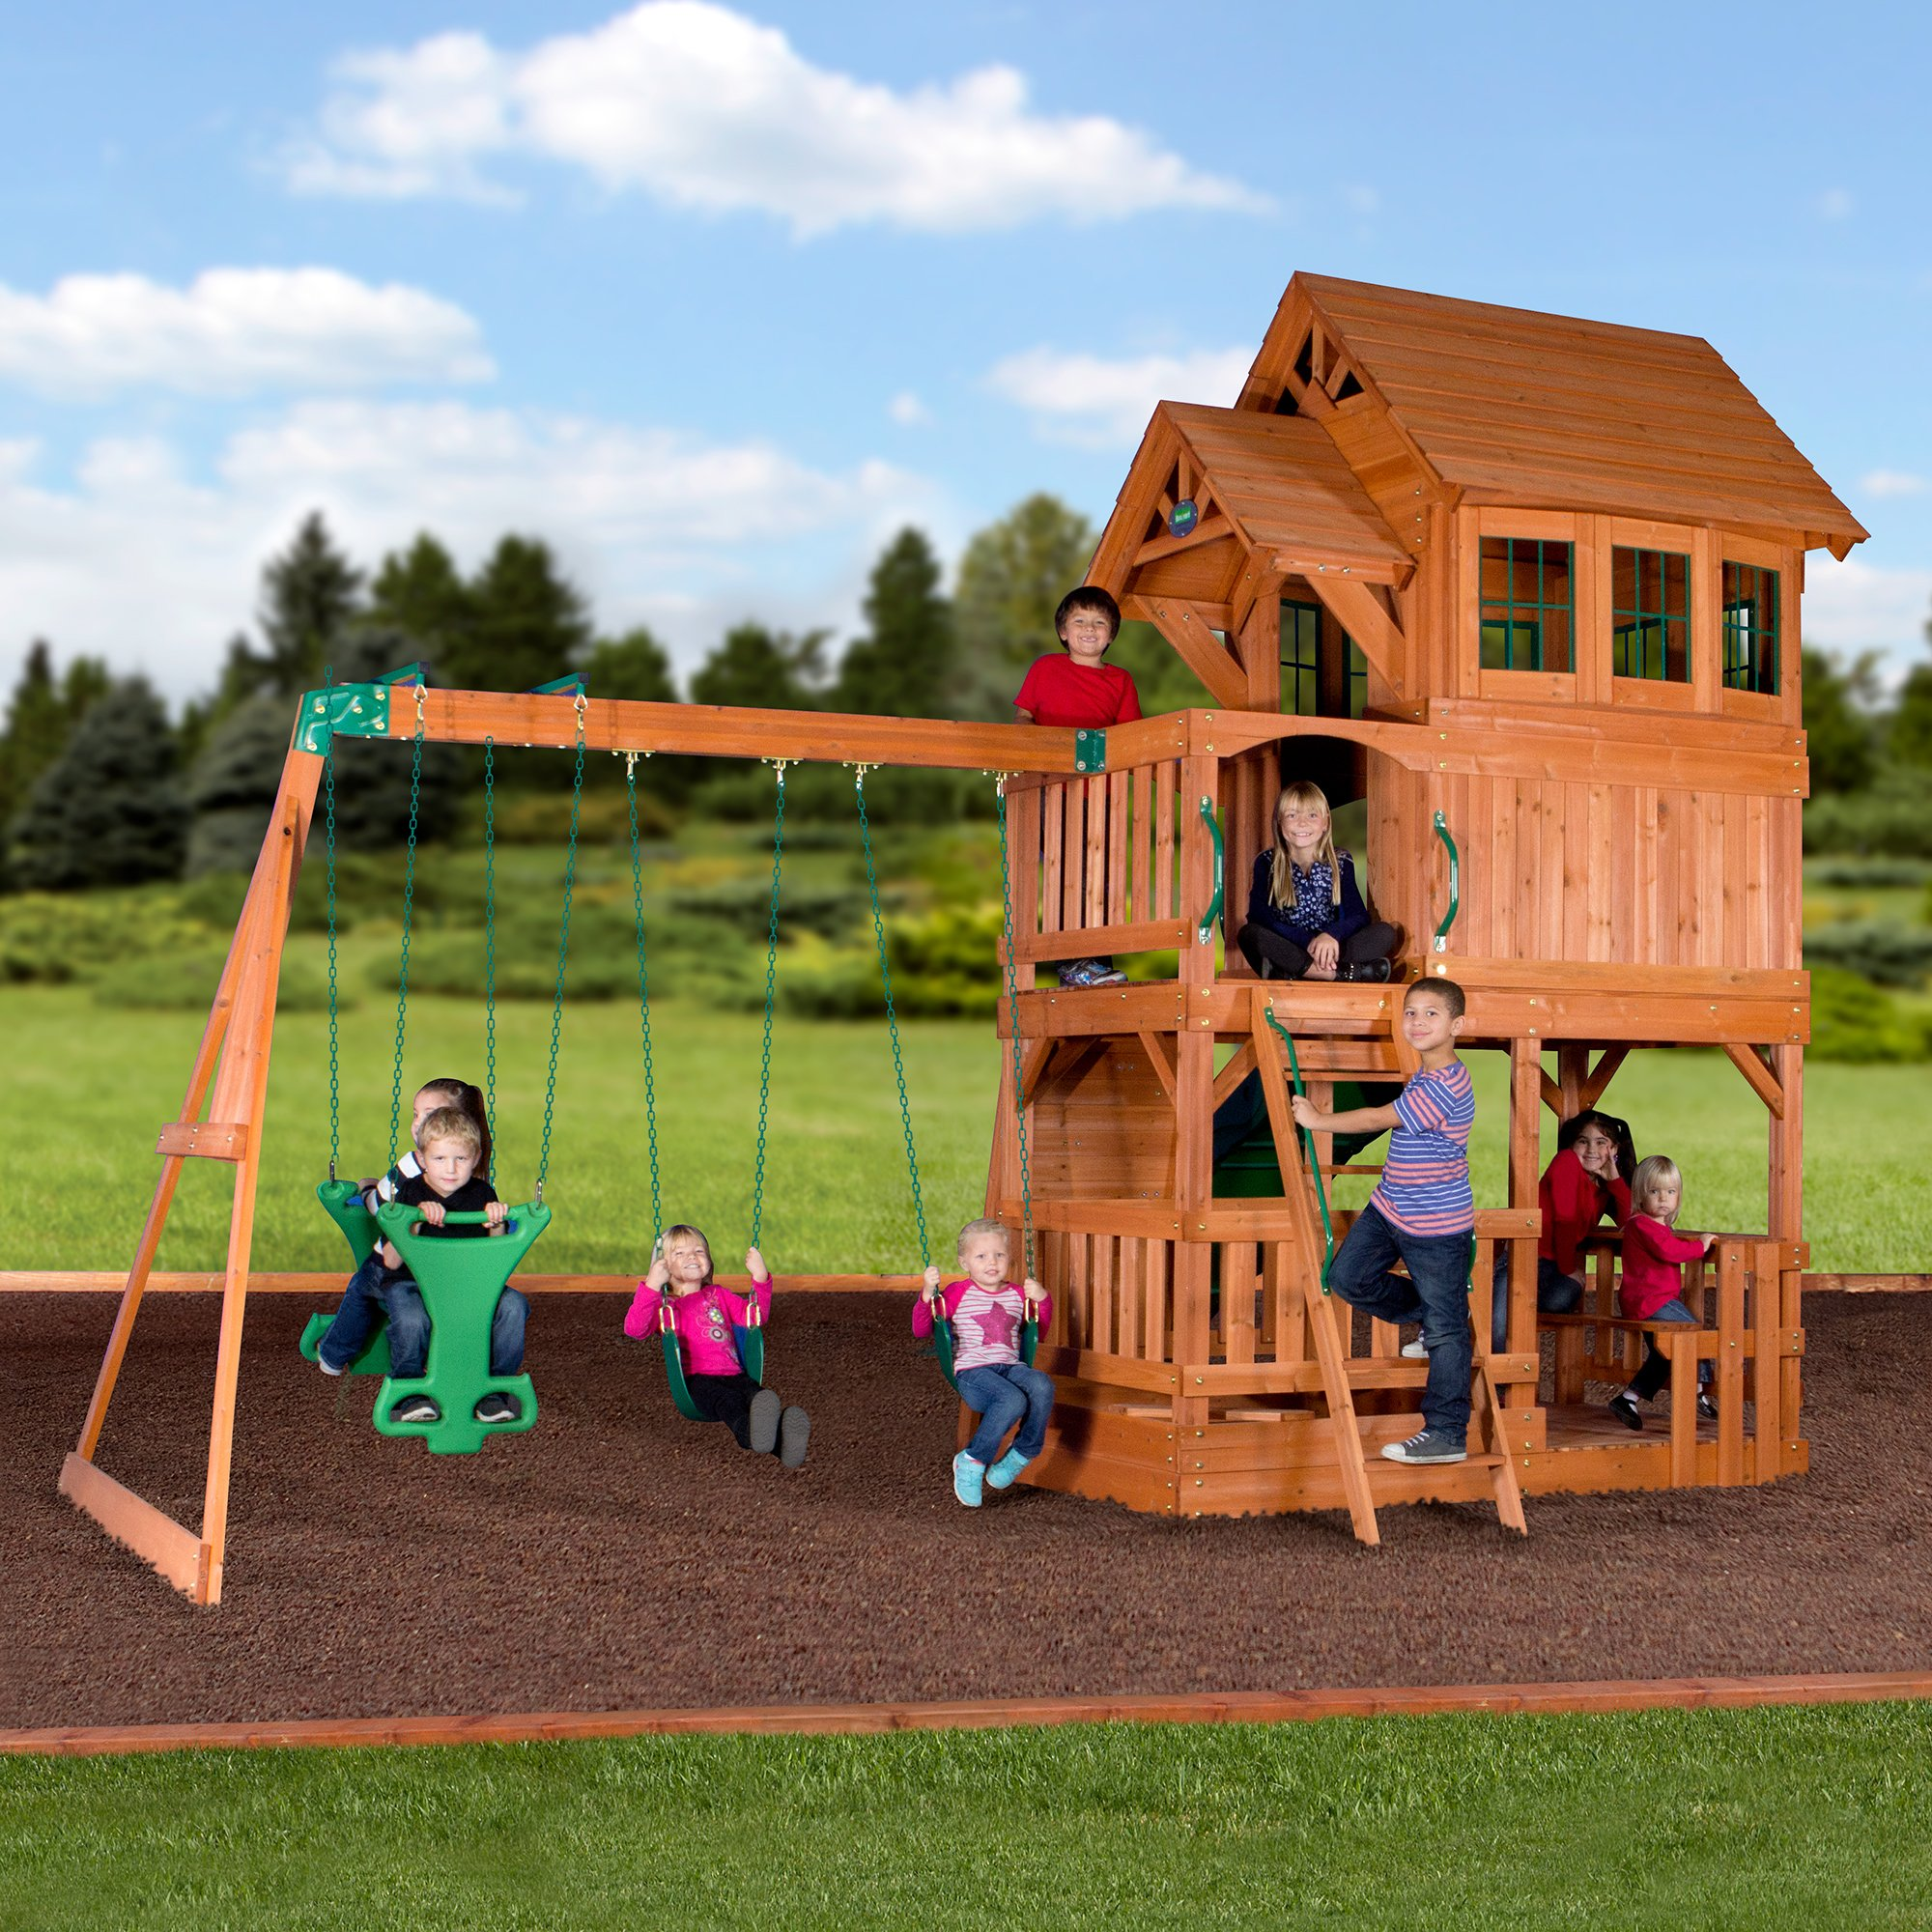 Backyard Discovery Swing Set Reviews Our Top 5 Picks Outdoor Chief